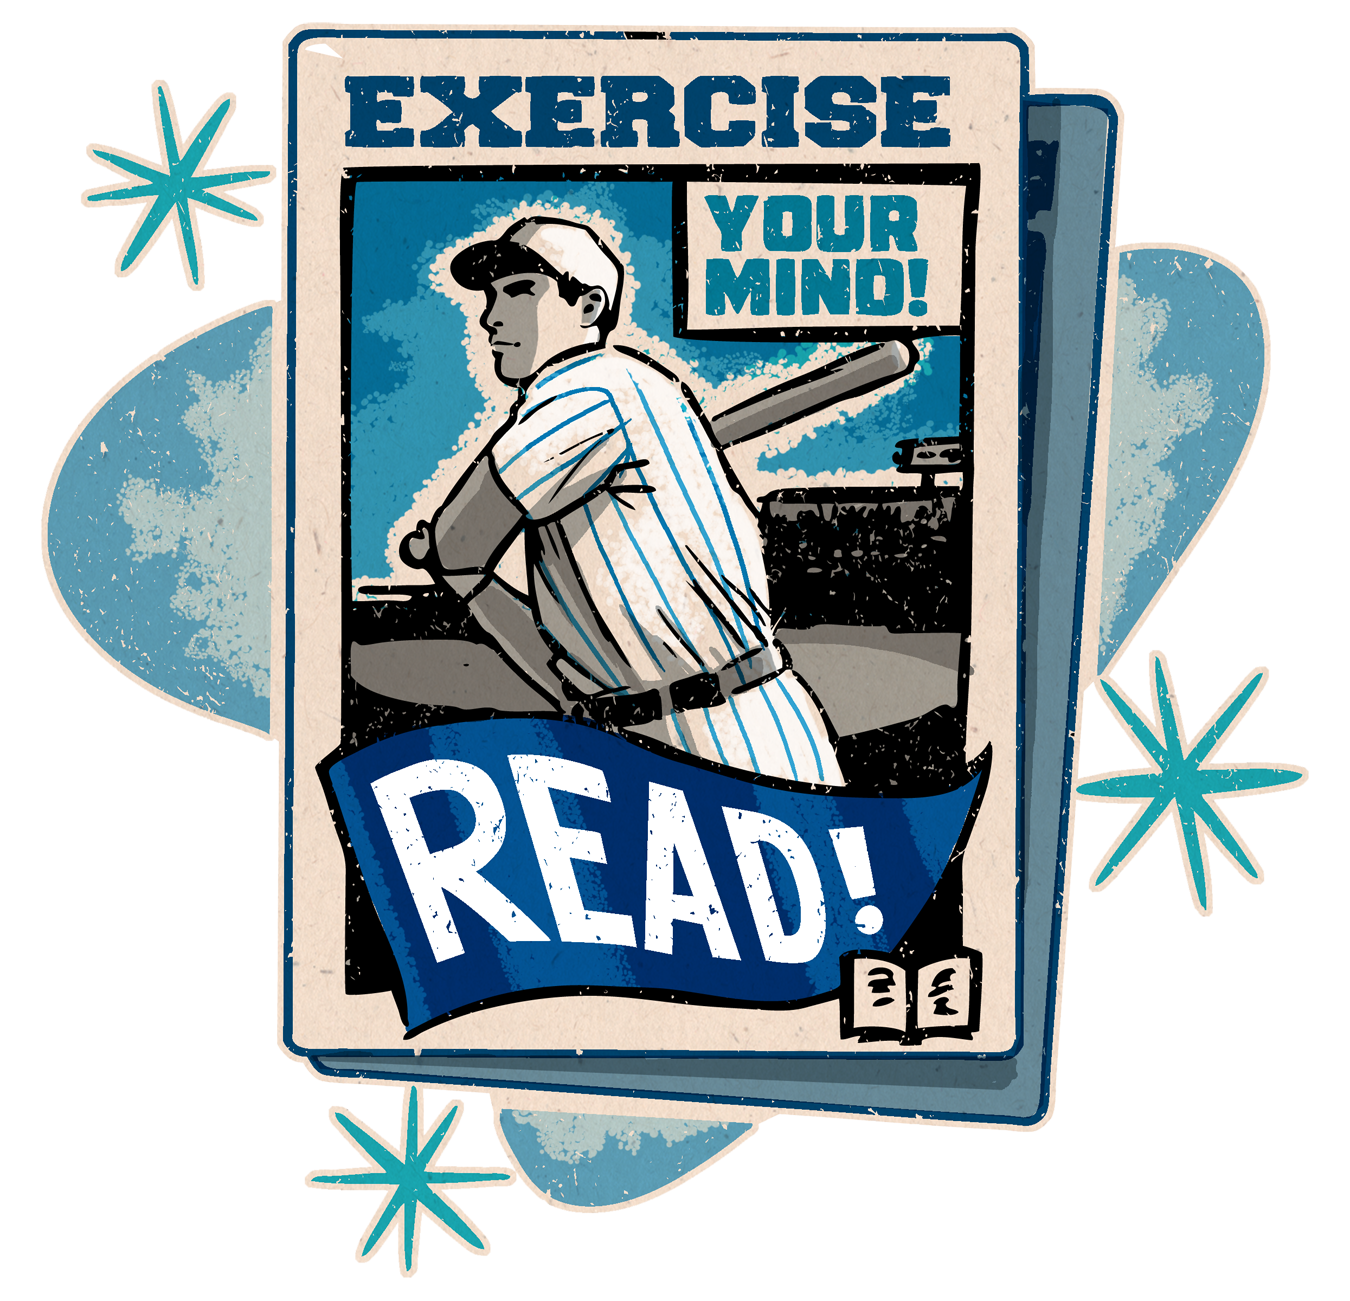 Excerise your mind, read Summer Reading Program